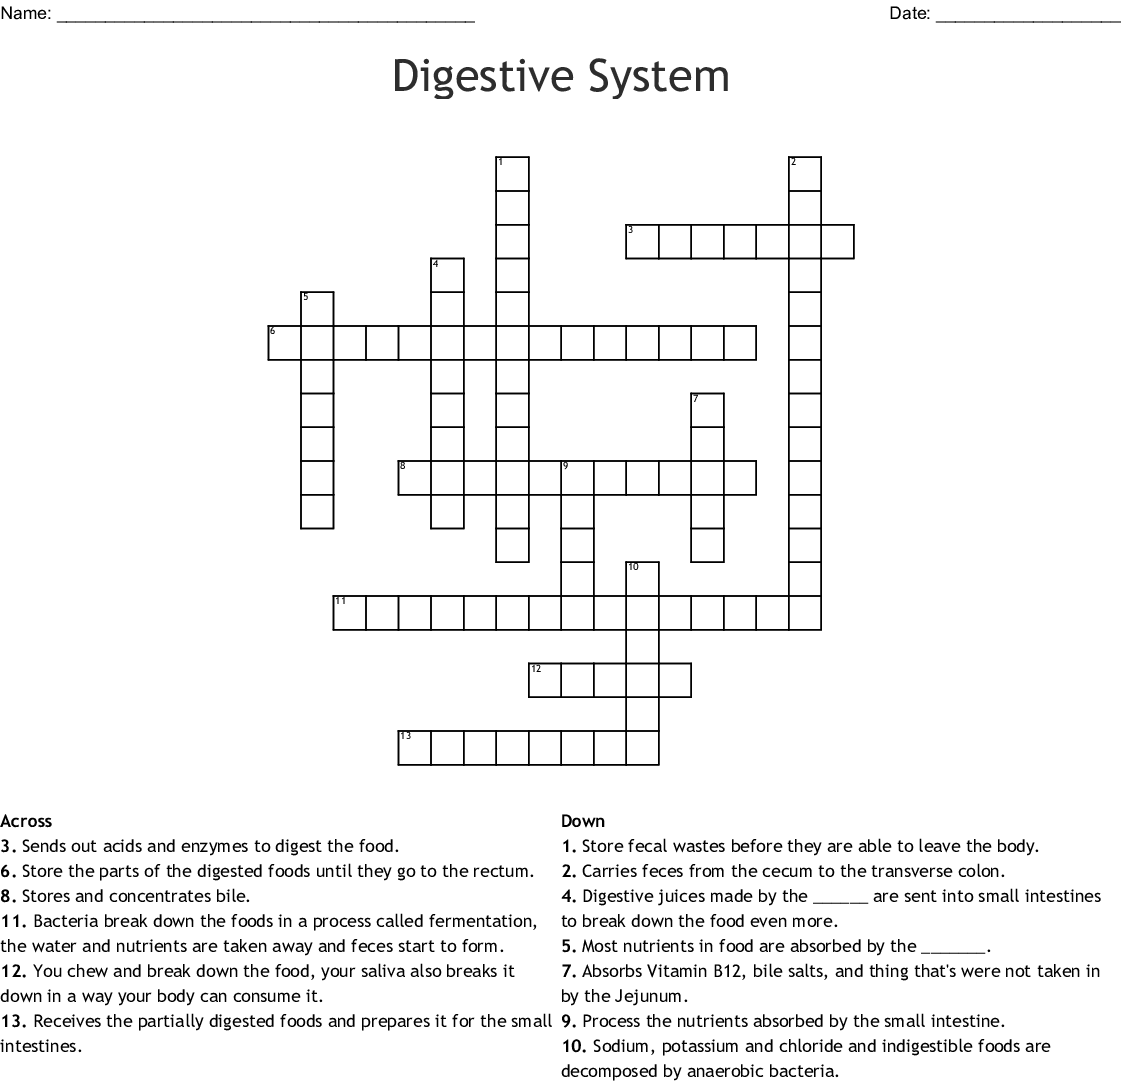 Digestive System Crossword Puzzle For Chocolate